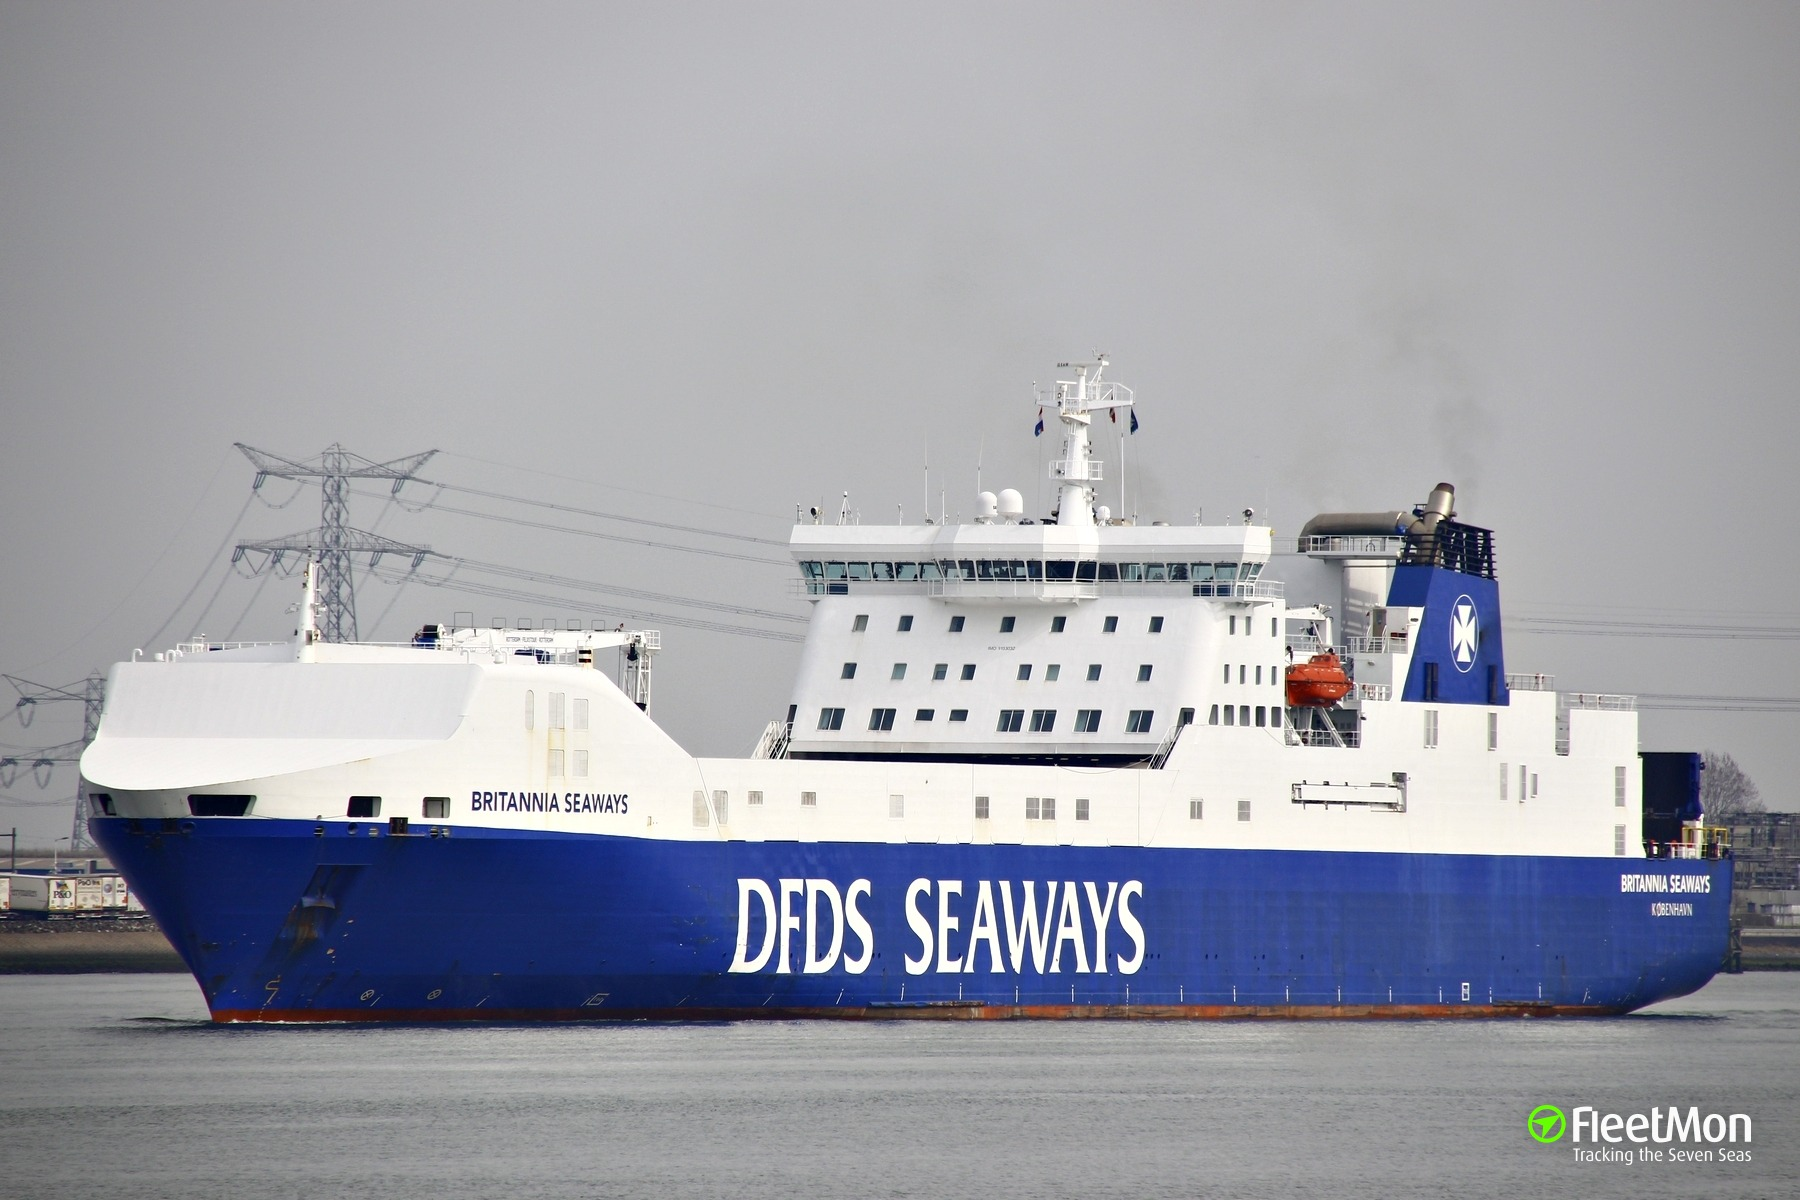 Ro-ro Britannia Seaways with military on board fighting fire in Norwegian waters